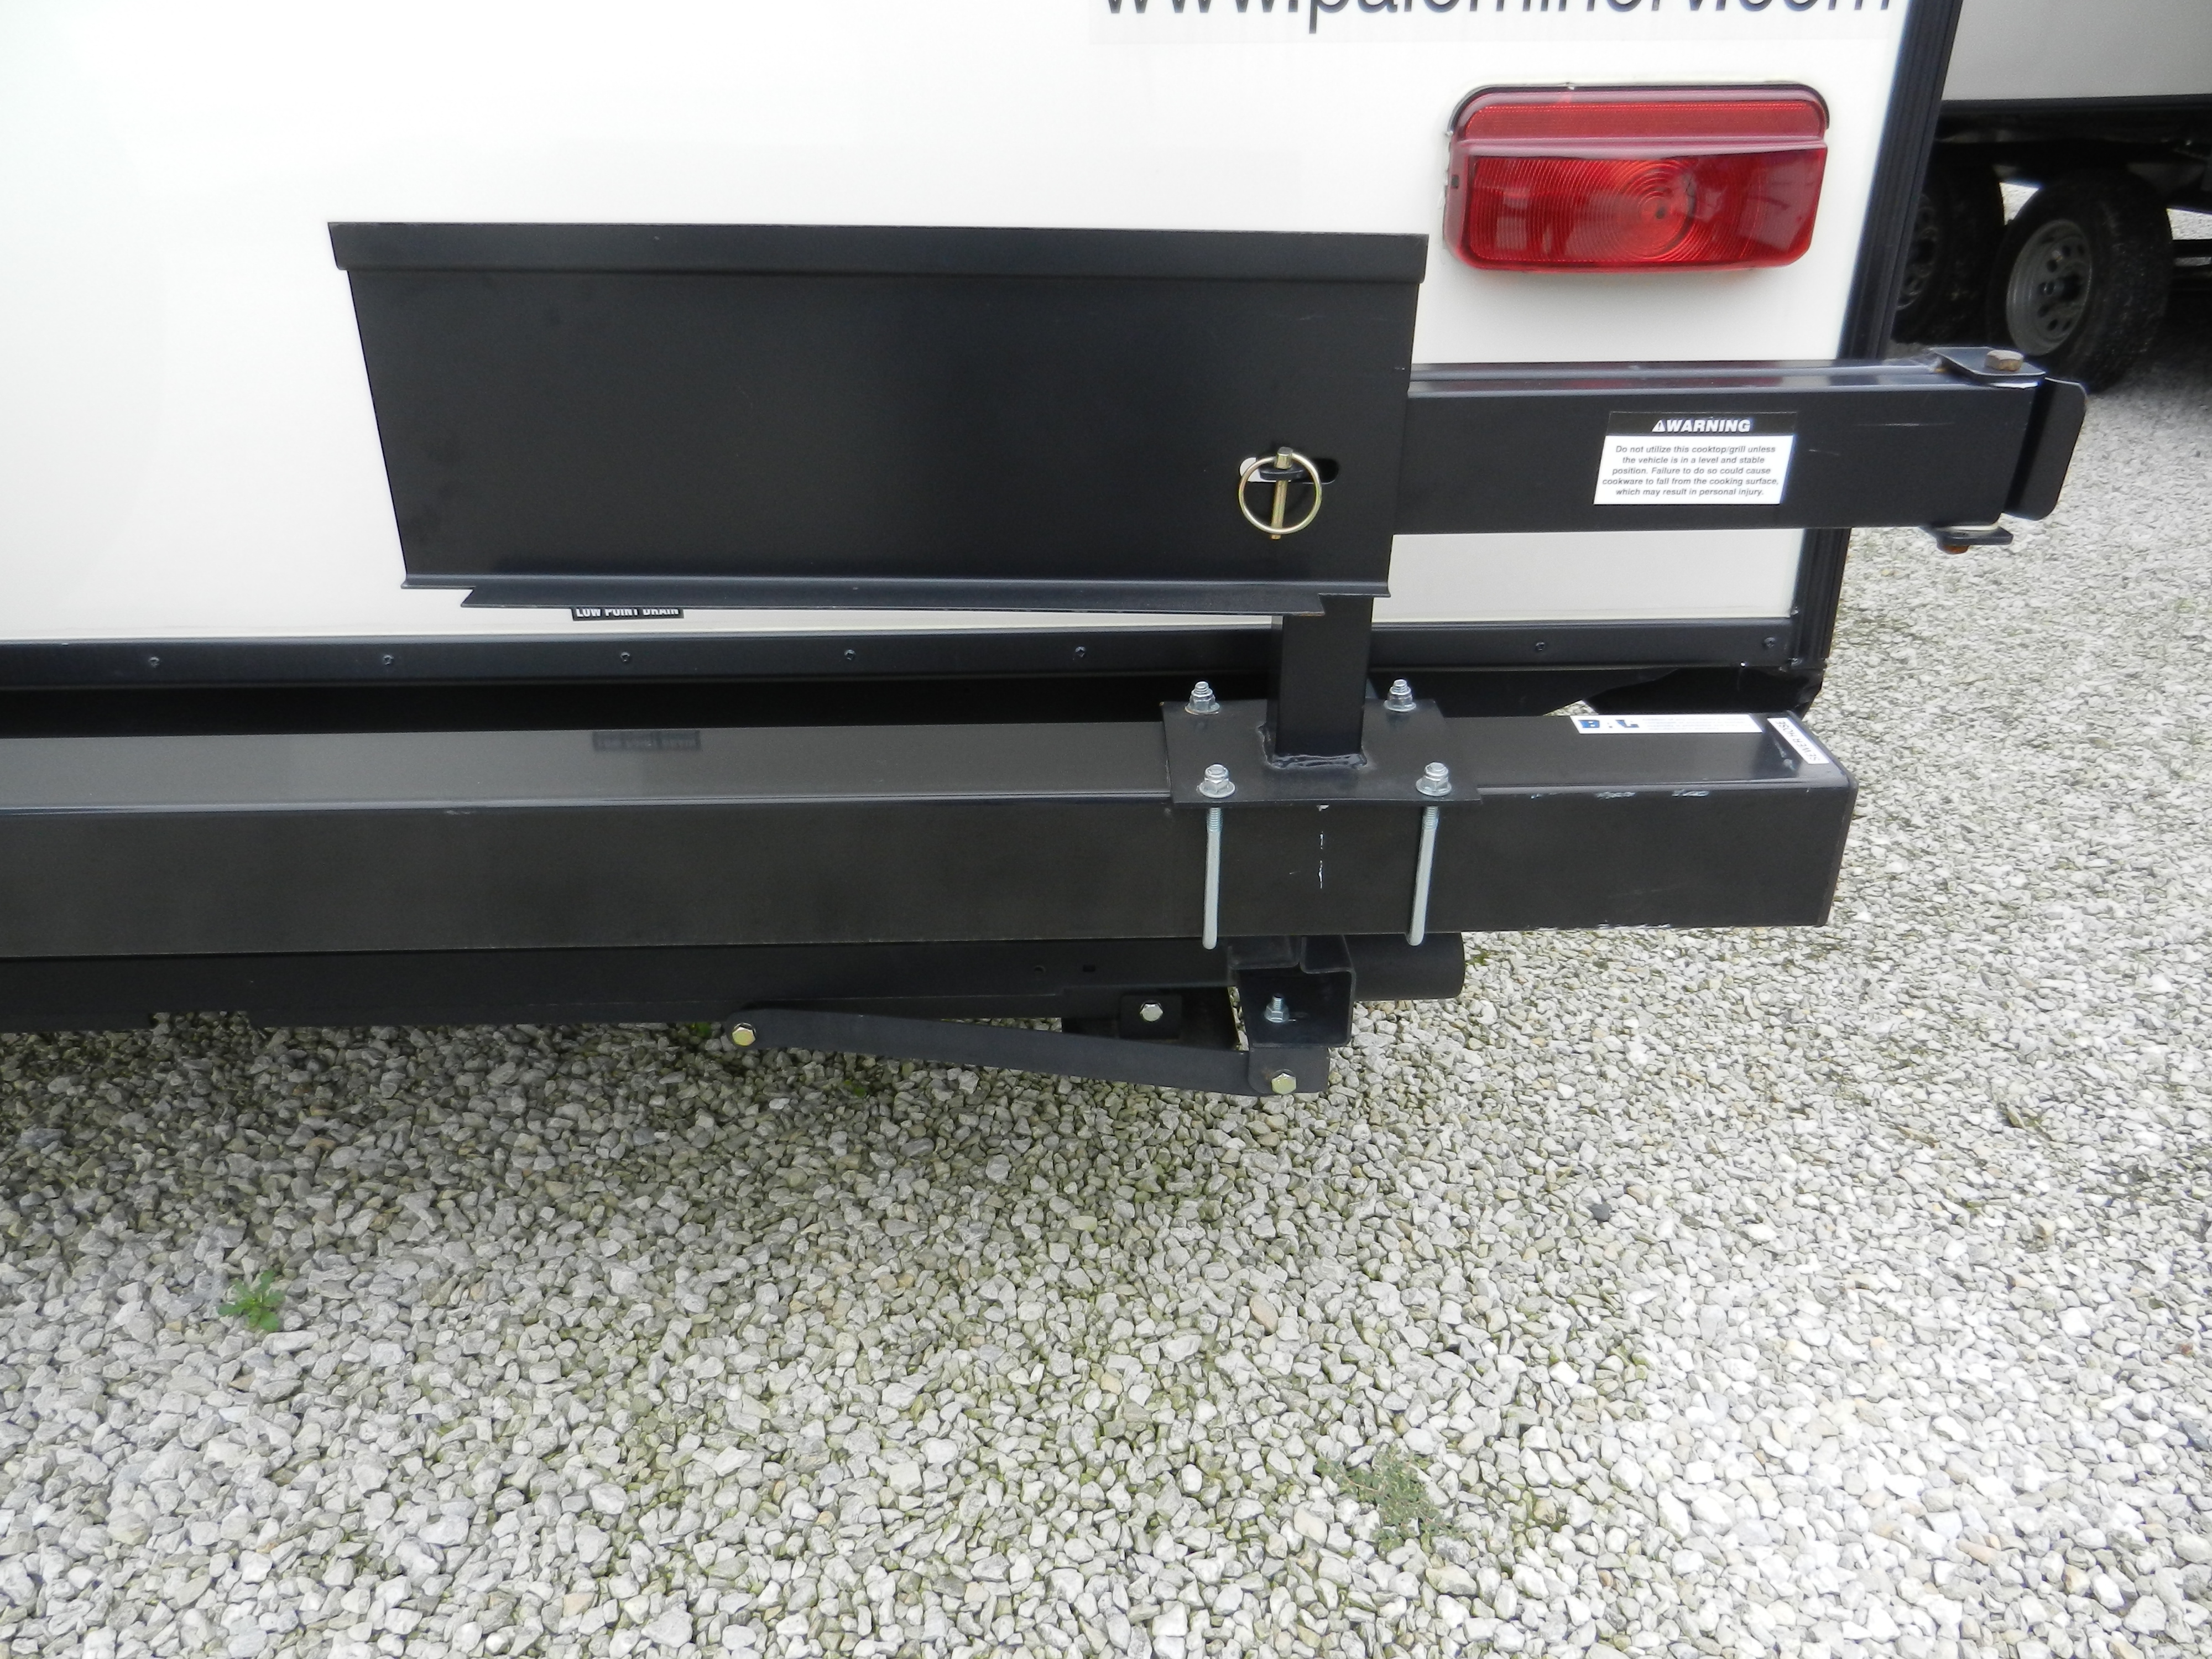 Bumper Grill Arm Assembly Outdoors Unlimited Inc : Locked Bumper Grill Arm from ouioutdoors.com size 4000 x 3000 jpeg 4577kB